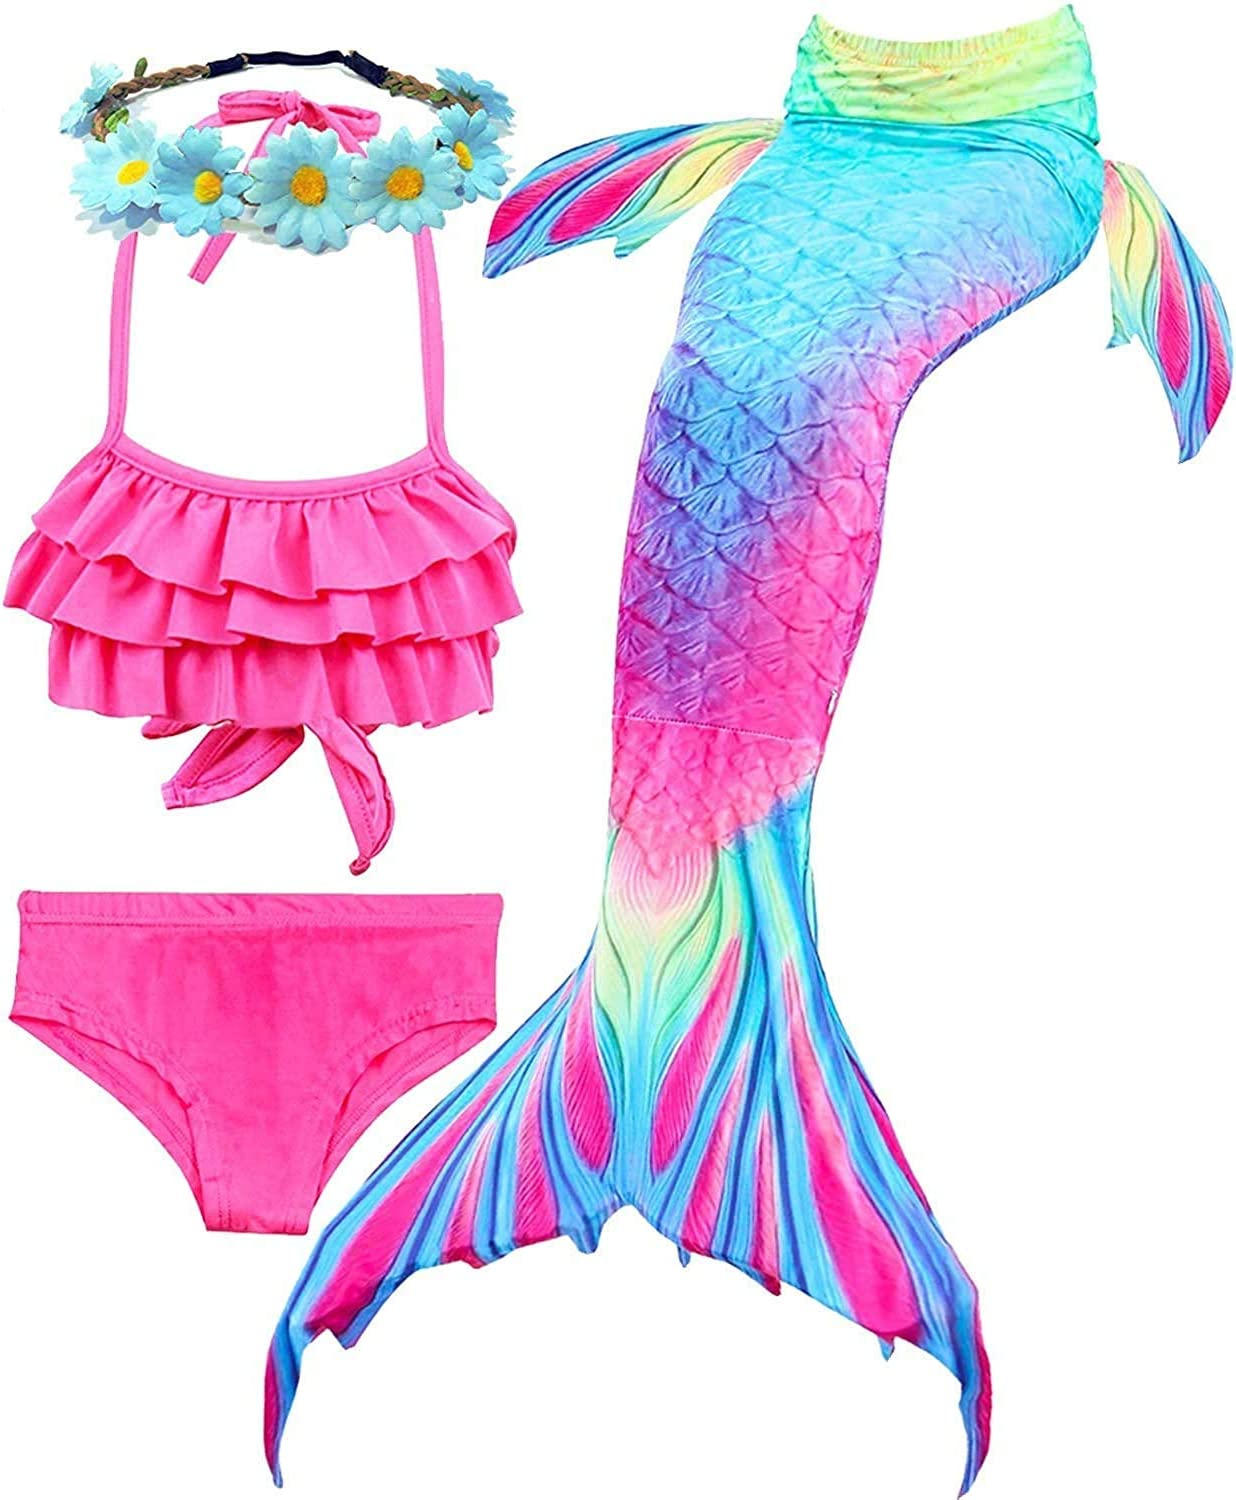 Camlinbo 3Pcs Girls At the price of surprise Swimsuits for Costu Tulsa Mall Swimming Mermaid